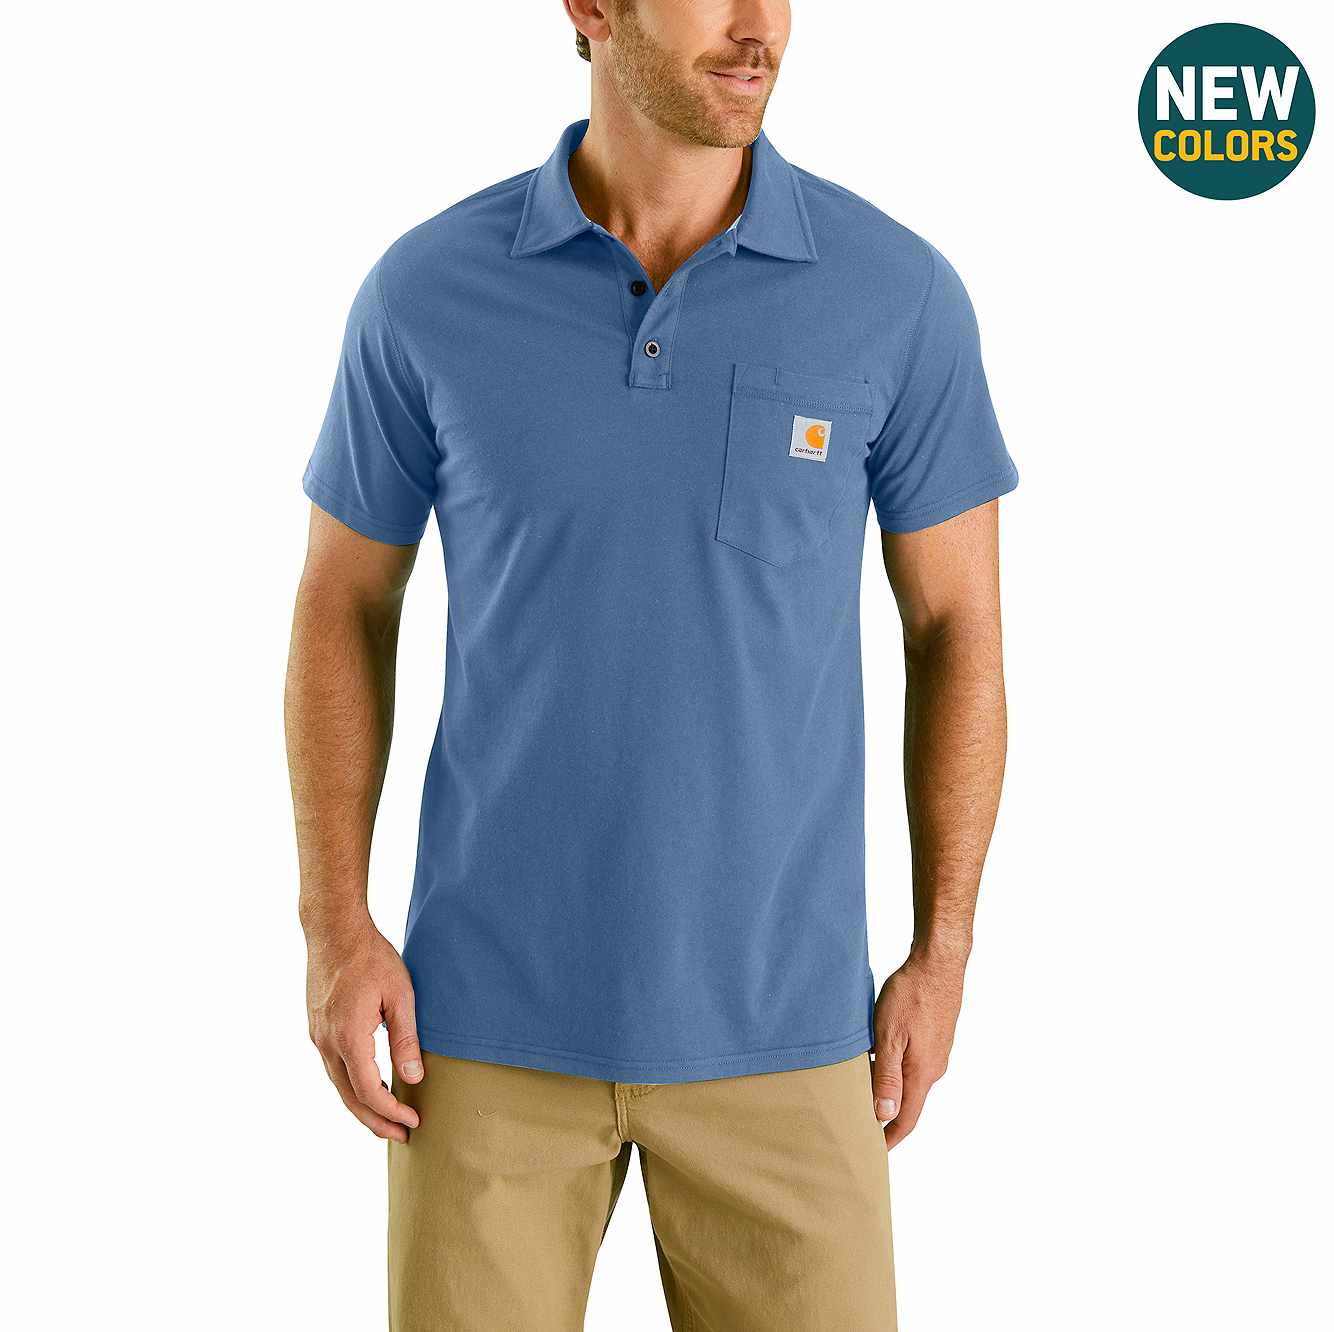 Picture of Carhartt Force® Cotton Delmont Pocket Polo in Coastal